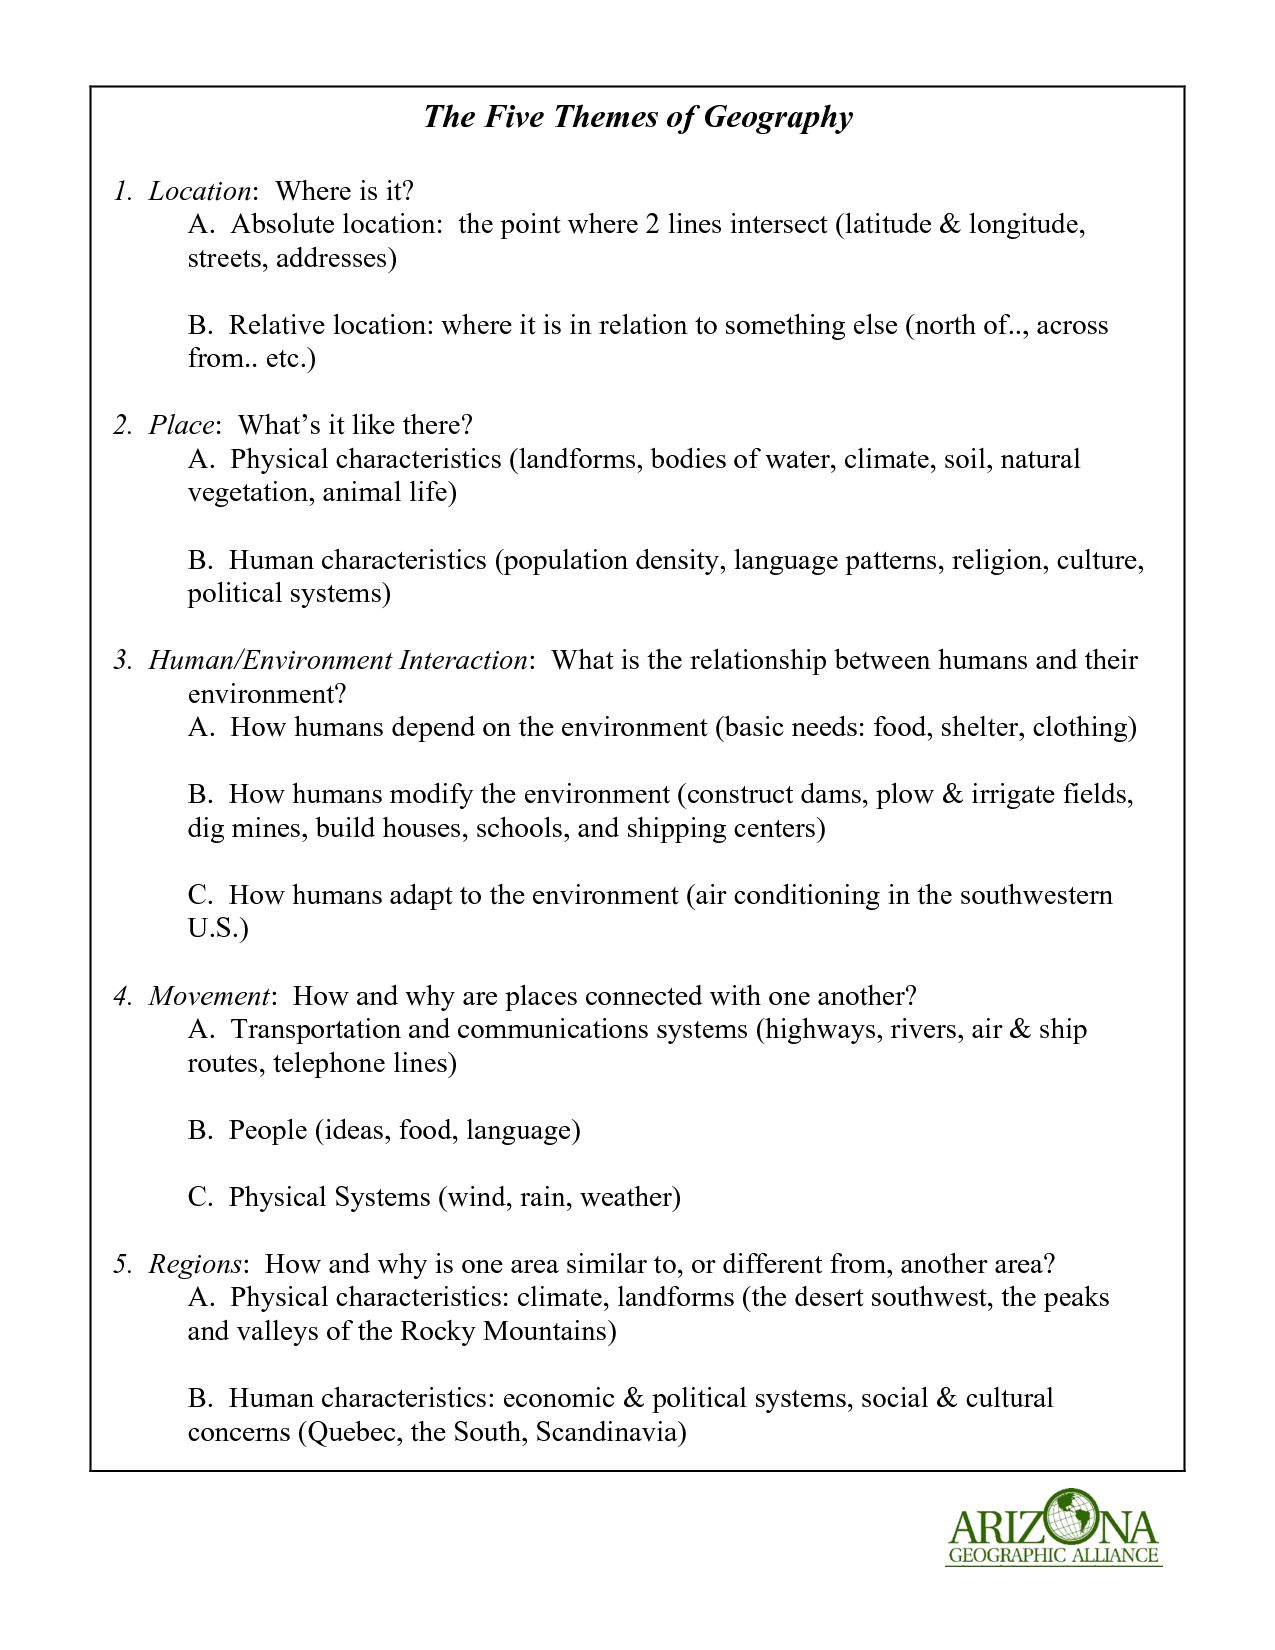 hight resolution of 5 Themes of Geography Printable   18 Best Images of Five Themes Of  Geography Worksheets…   Geography worksheets